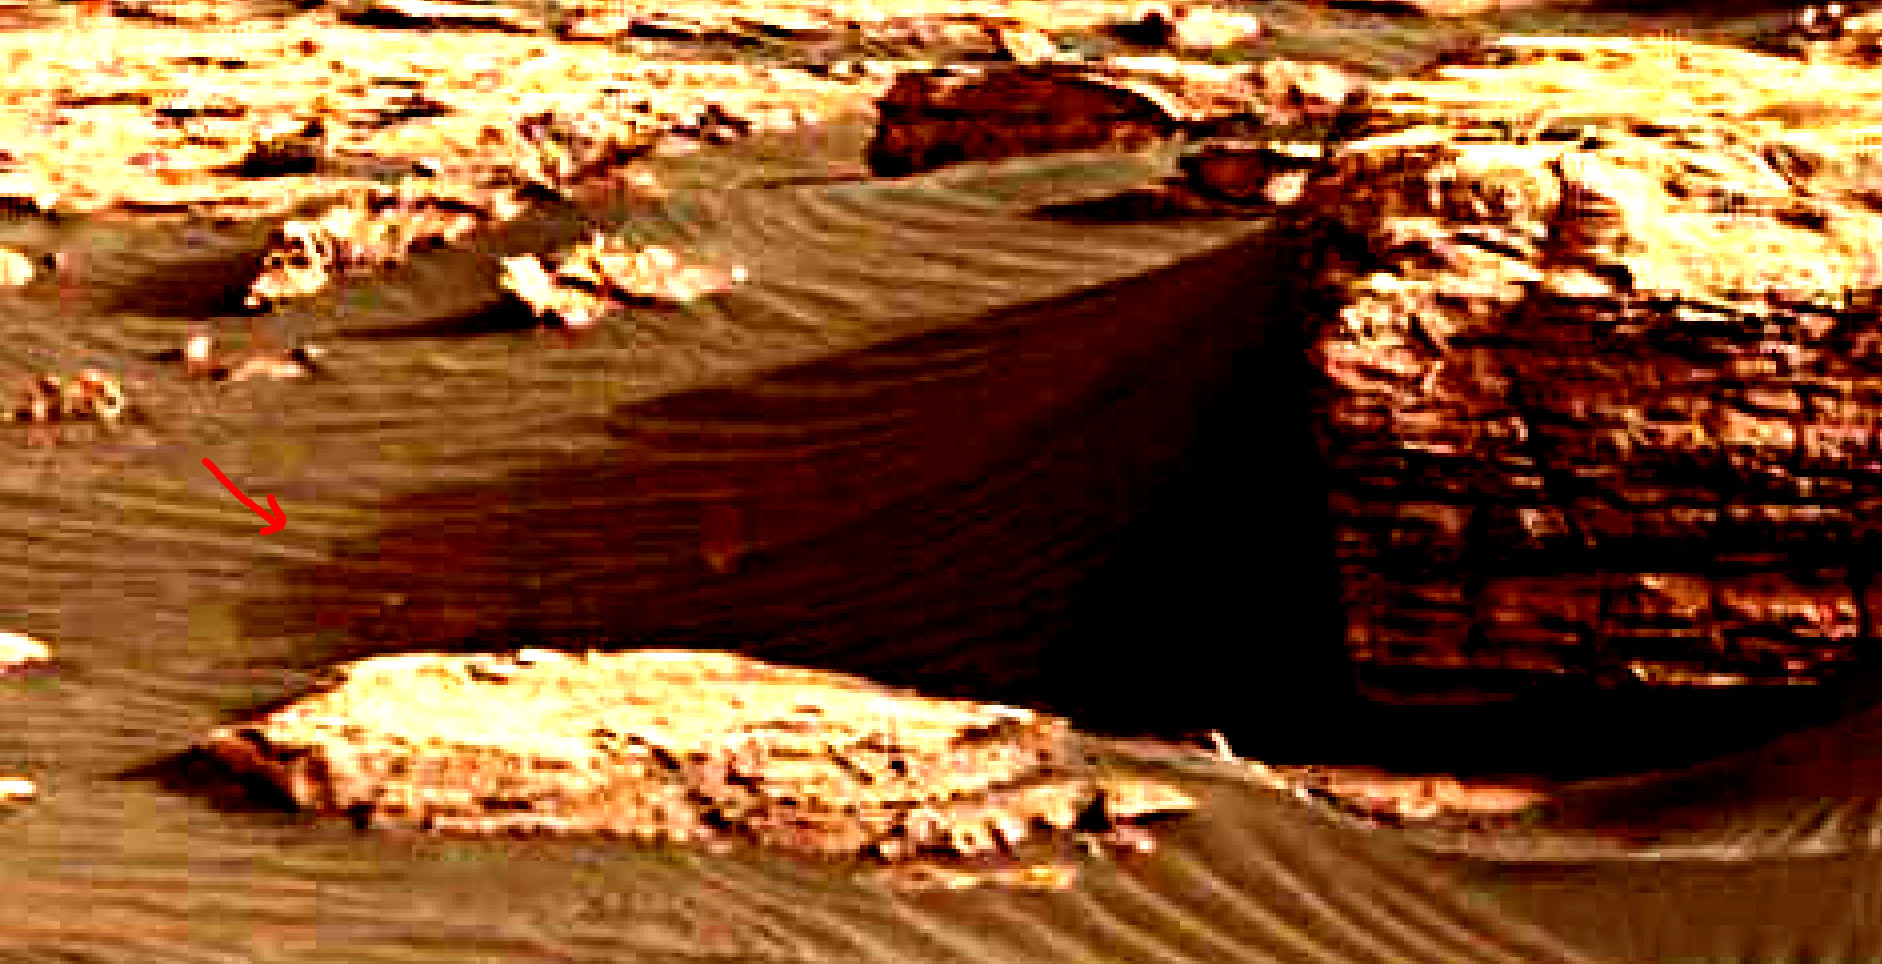 mars-sol-1512-anomaly-artifacts-6a-was-life-on-mars